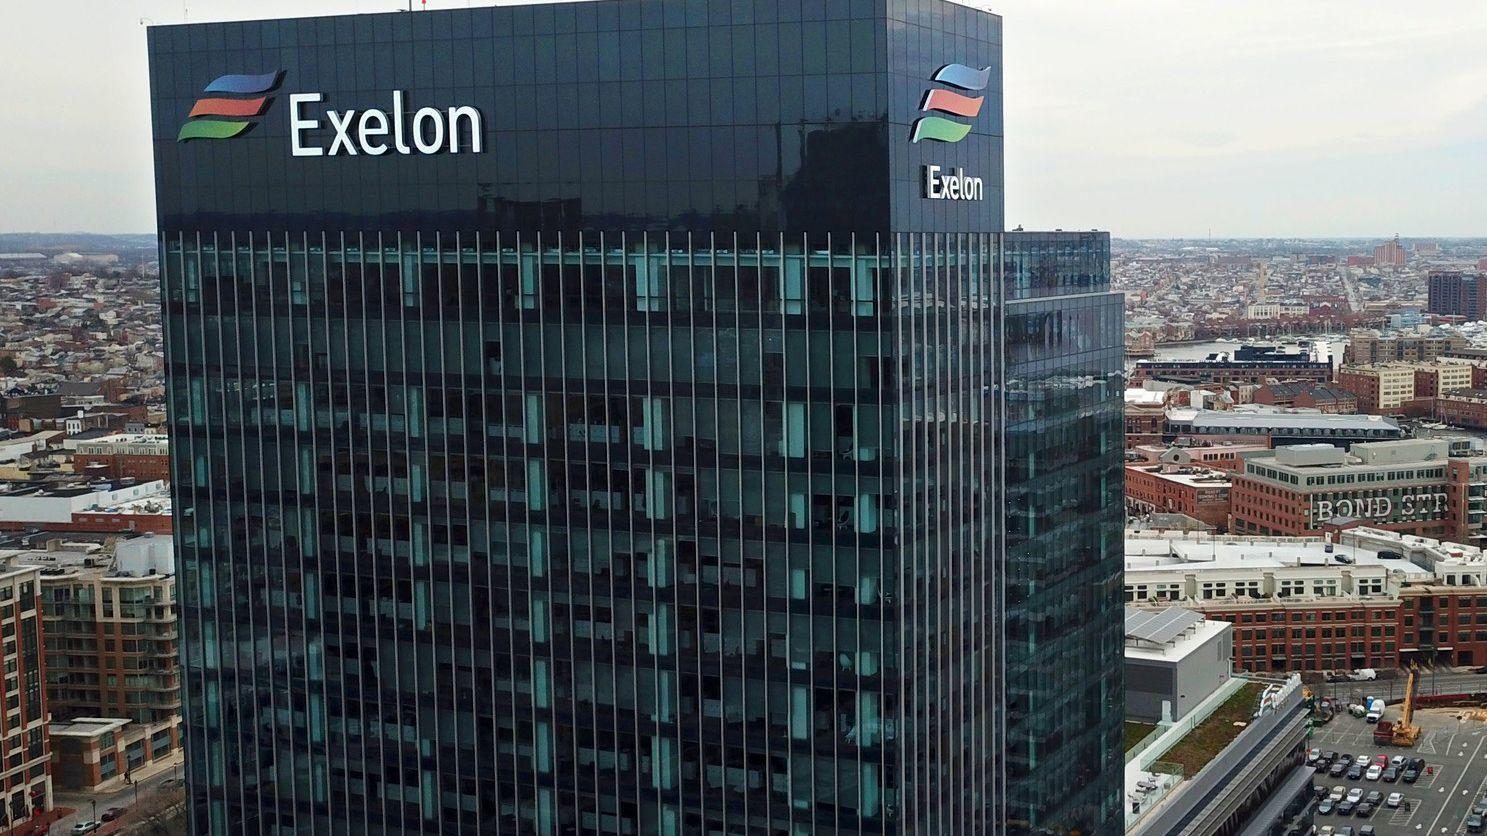 Exelon baltimore md